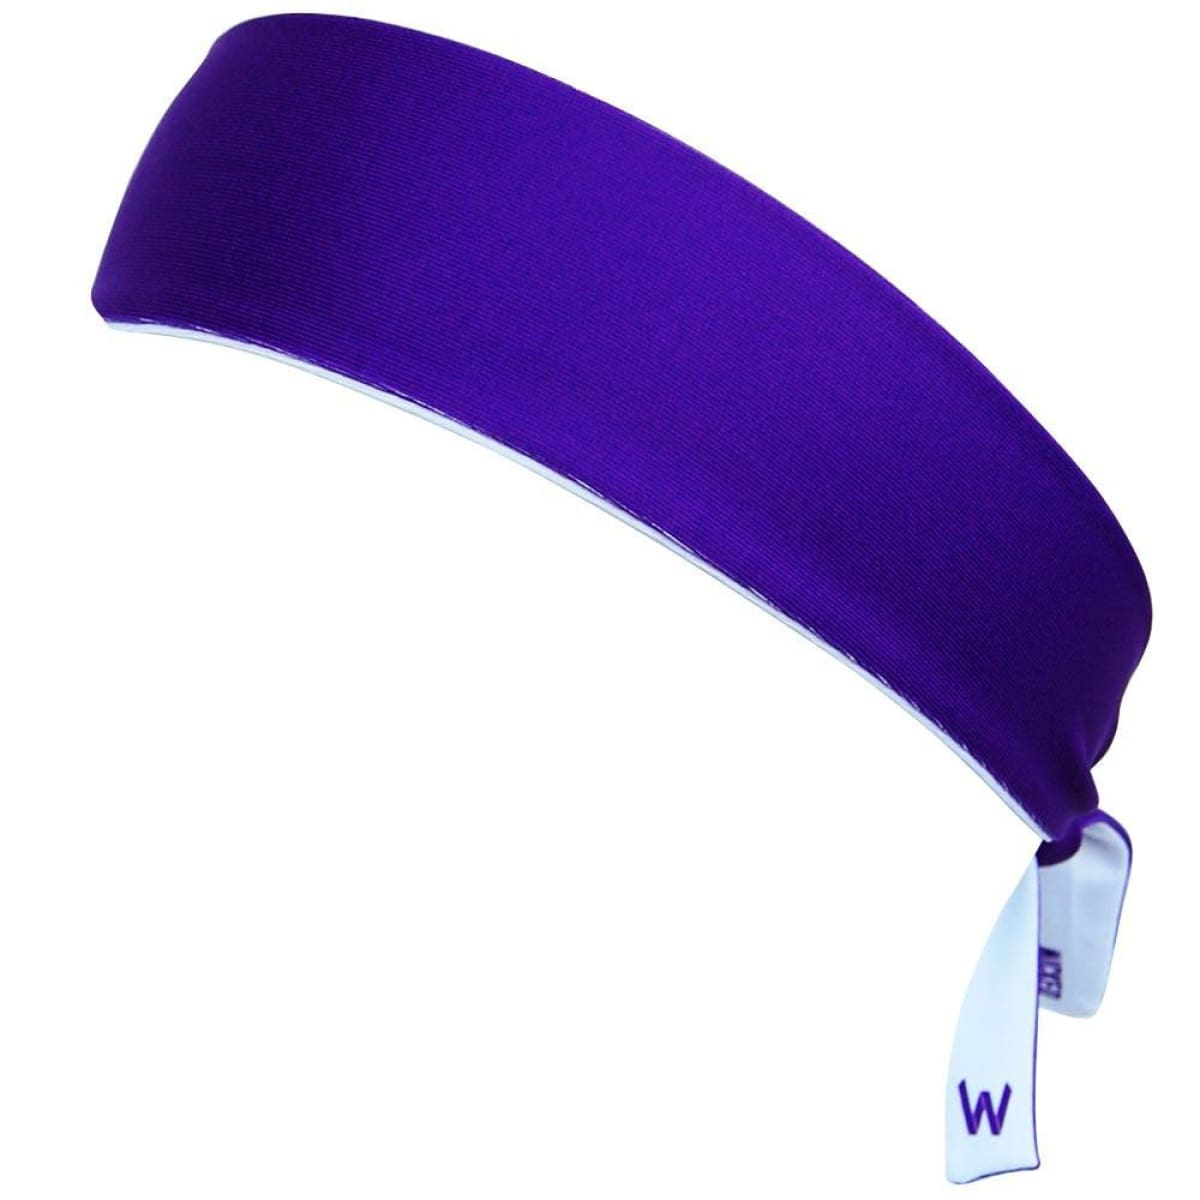 Purple and White Elastic Tie 2.25 Inch Headband